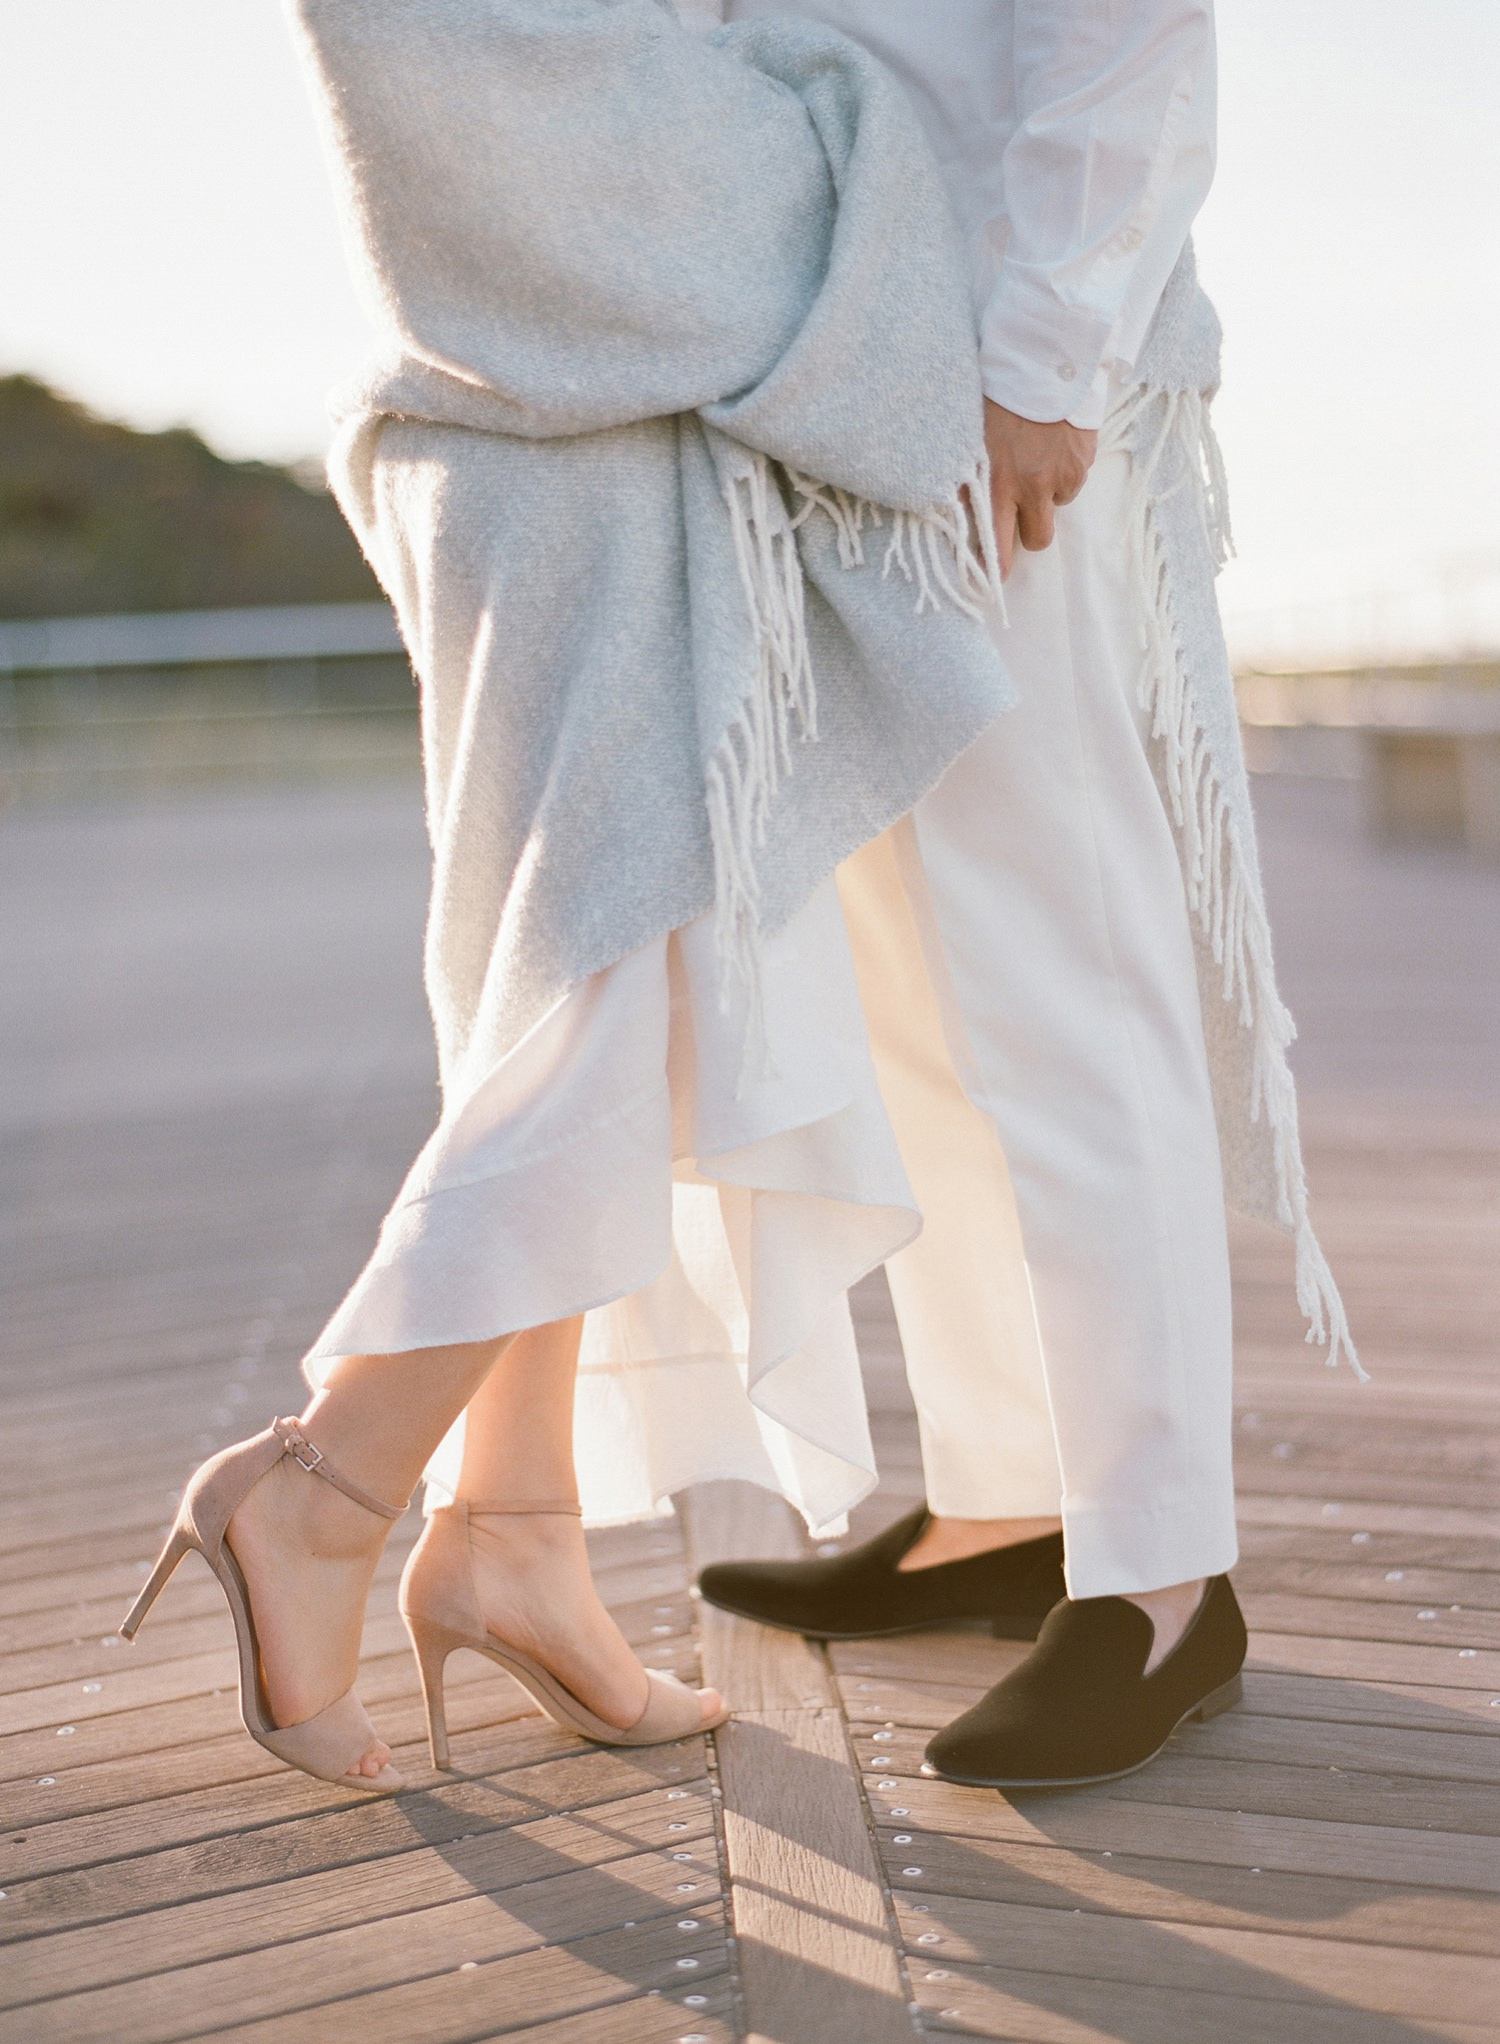 boardwalk engagement photos